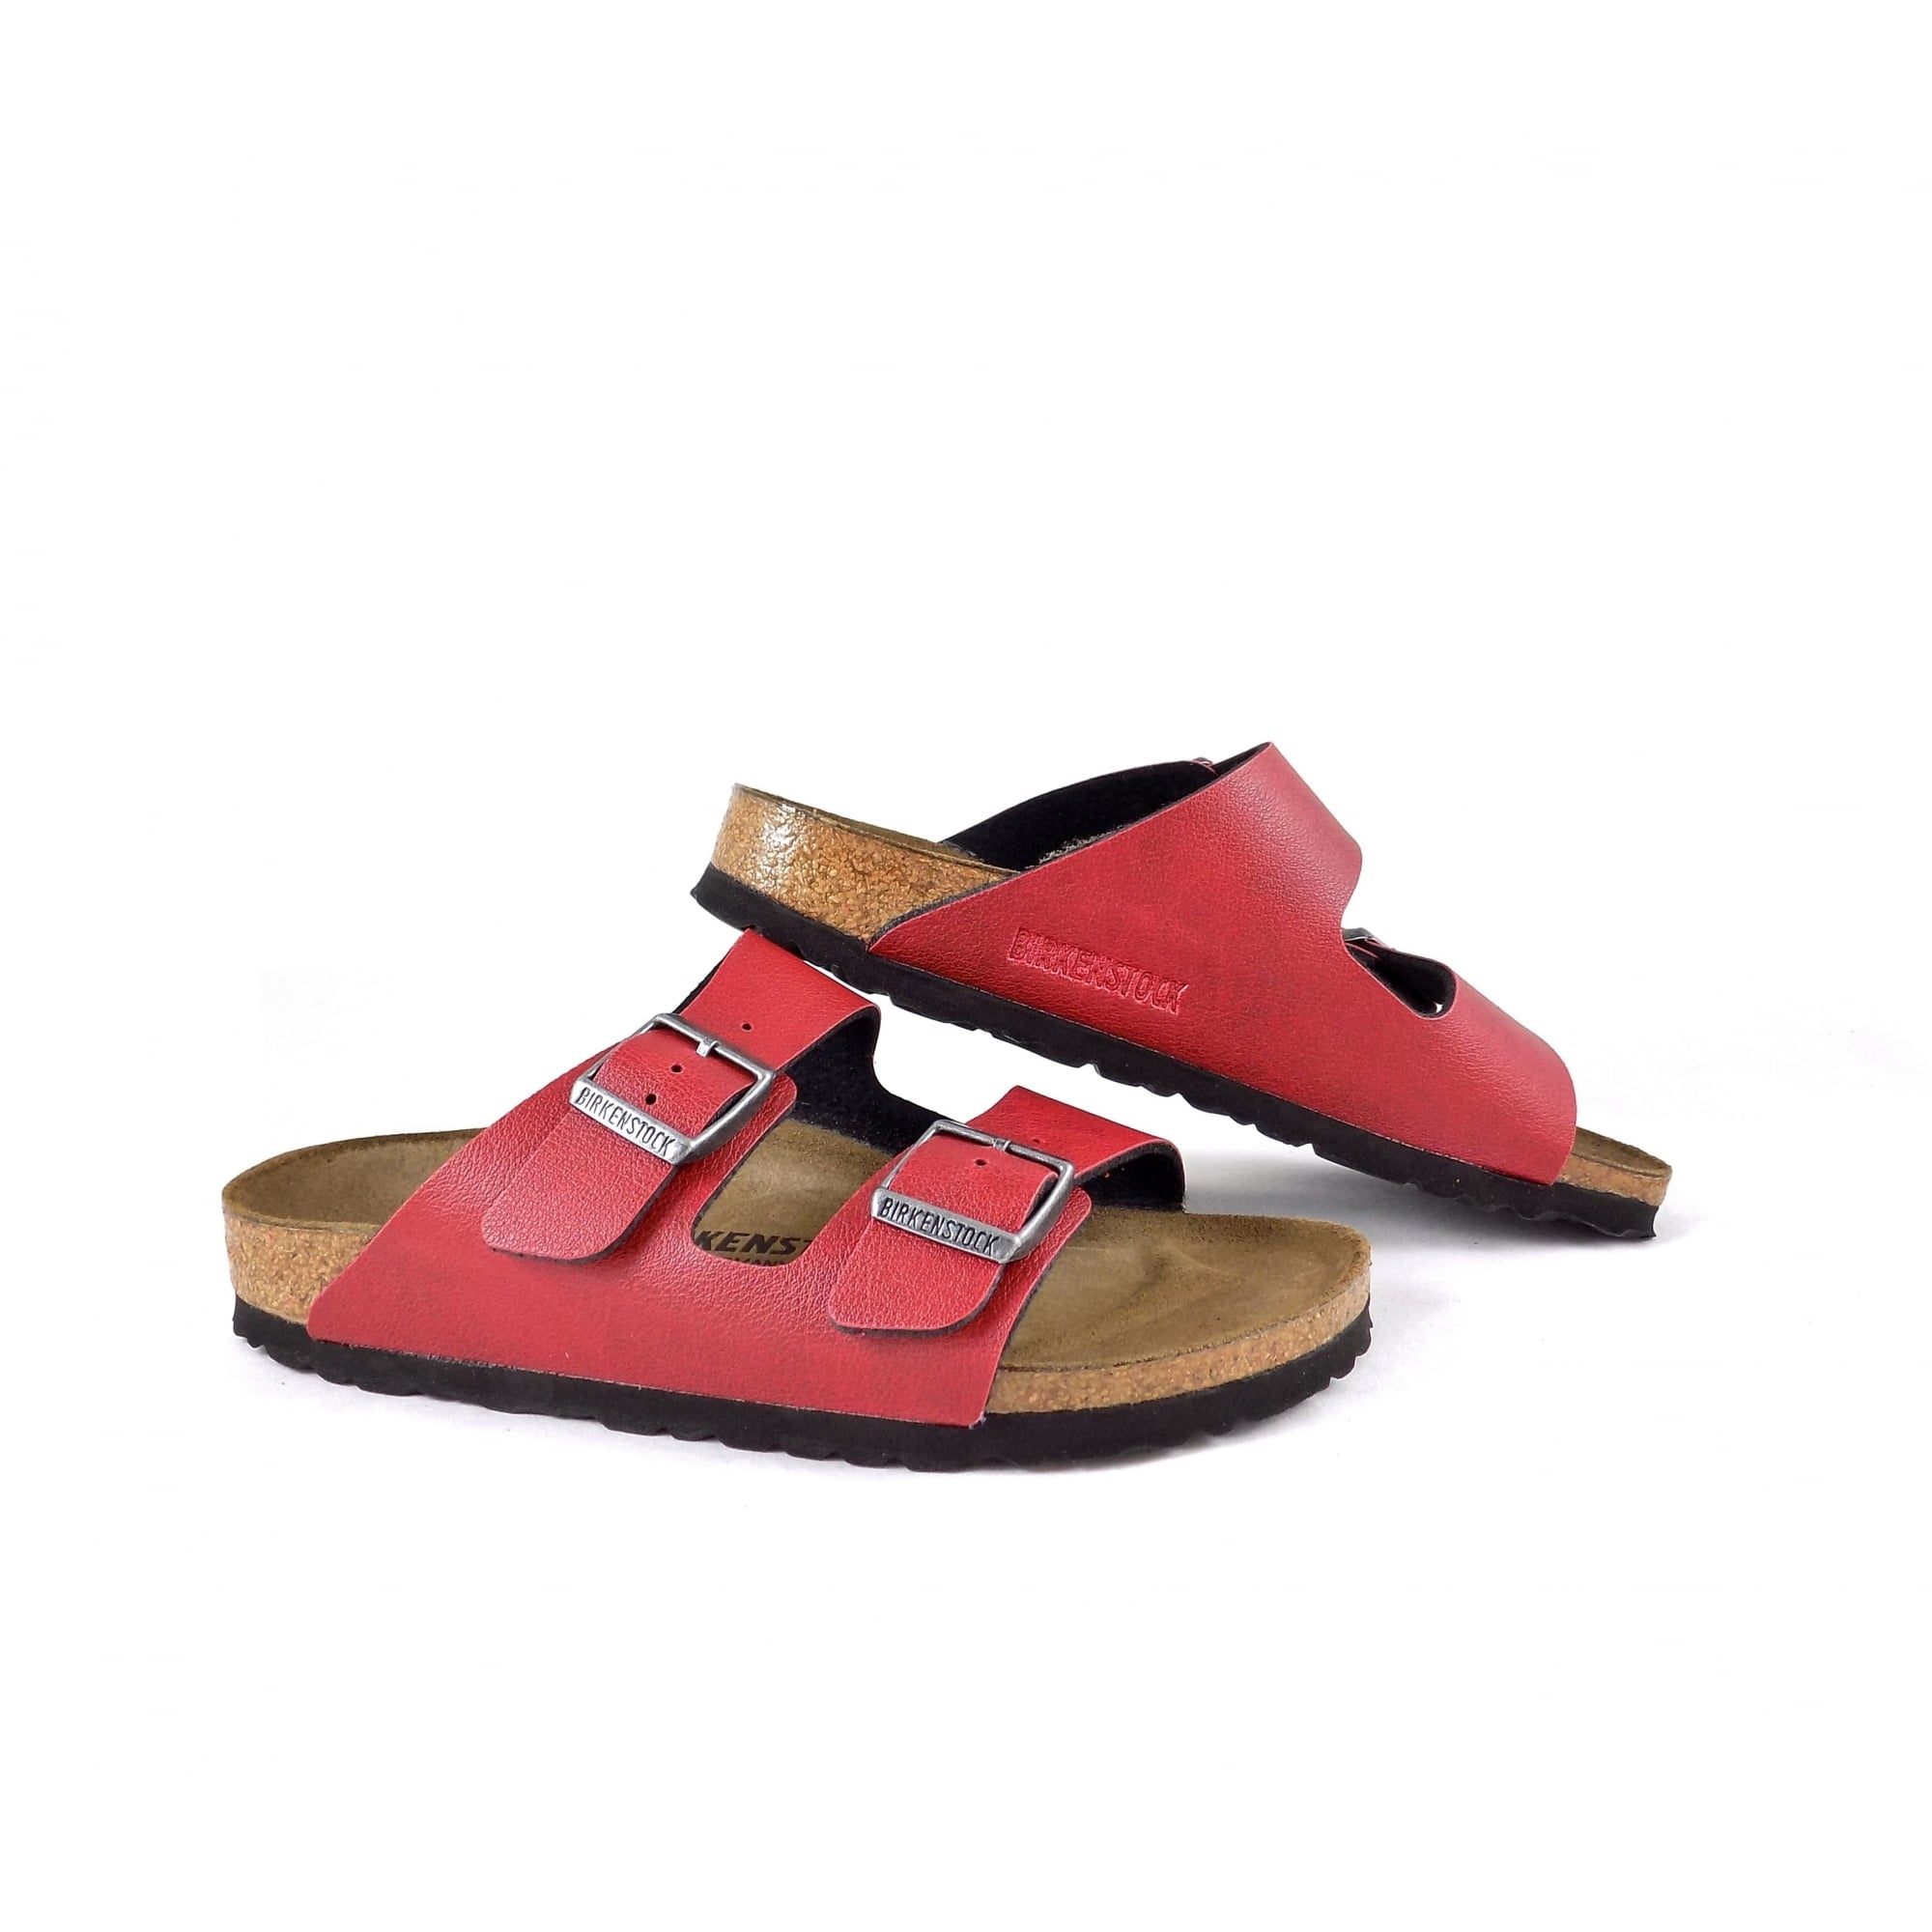 Strap Two Narrow Birkenstock Fit Birkenstock Sandal Arizona